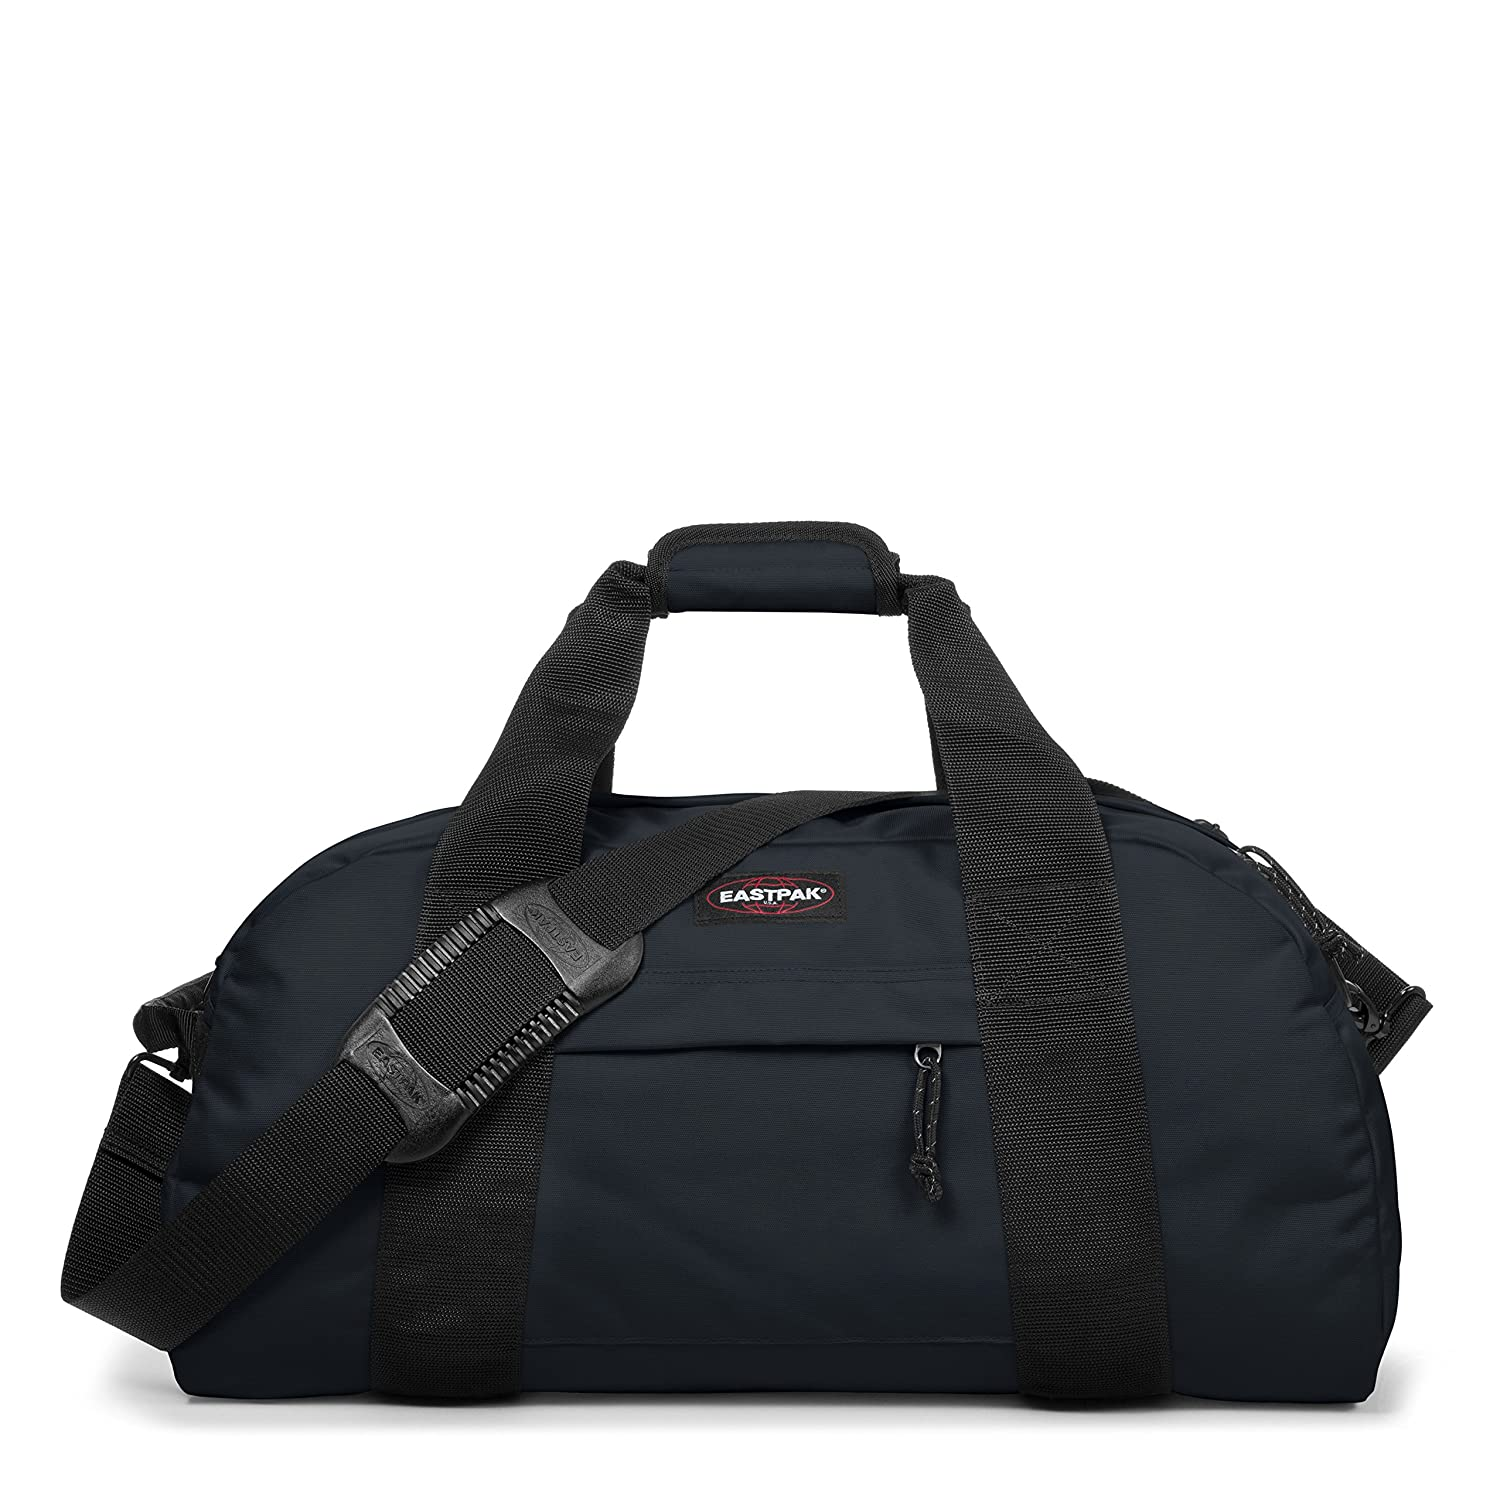 Sac Eastpak Stand 53 cm Leaves Black noir tr2I6O